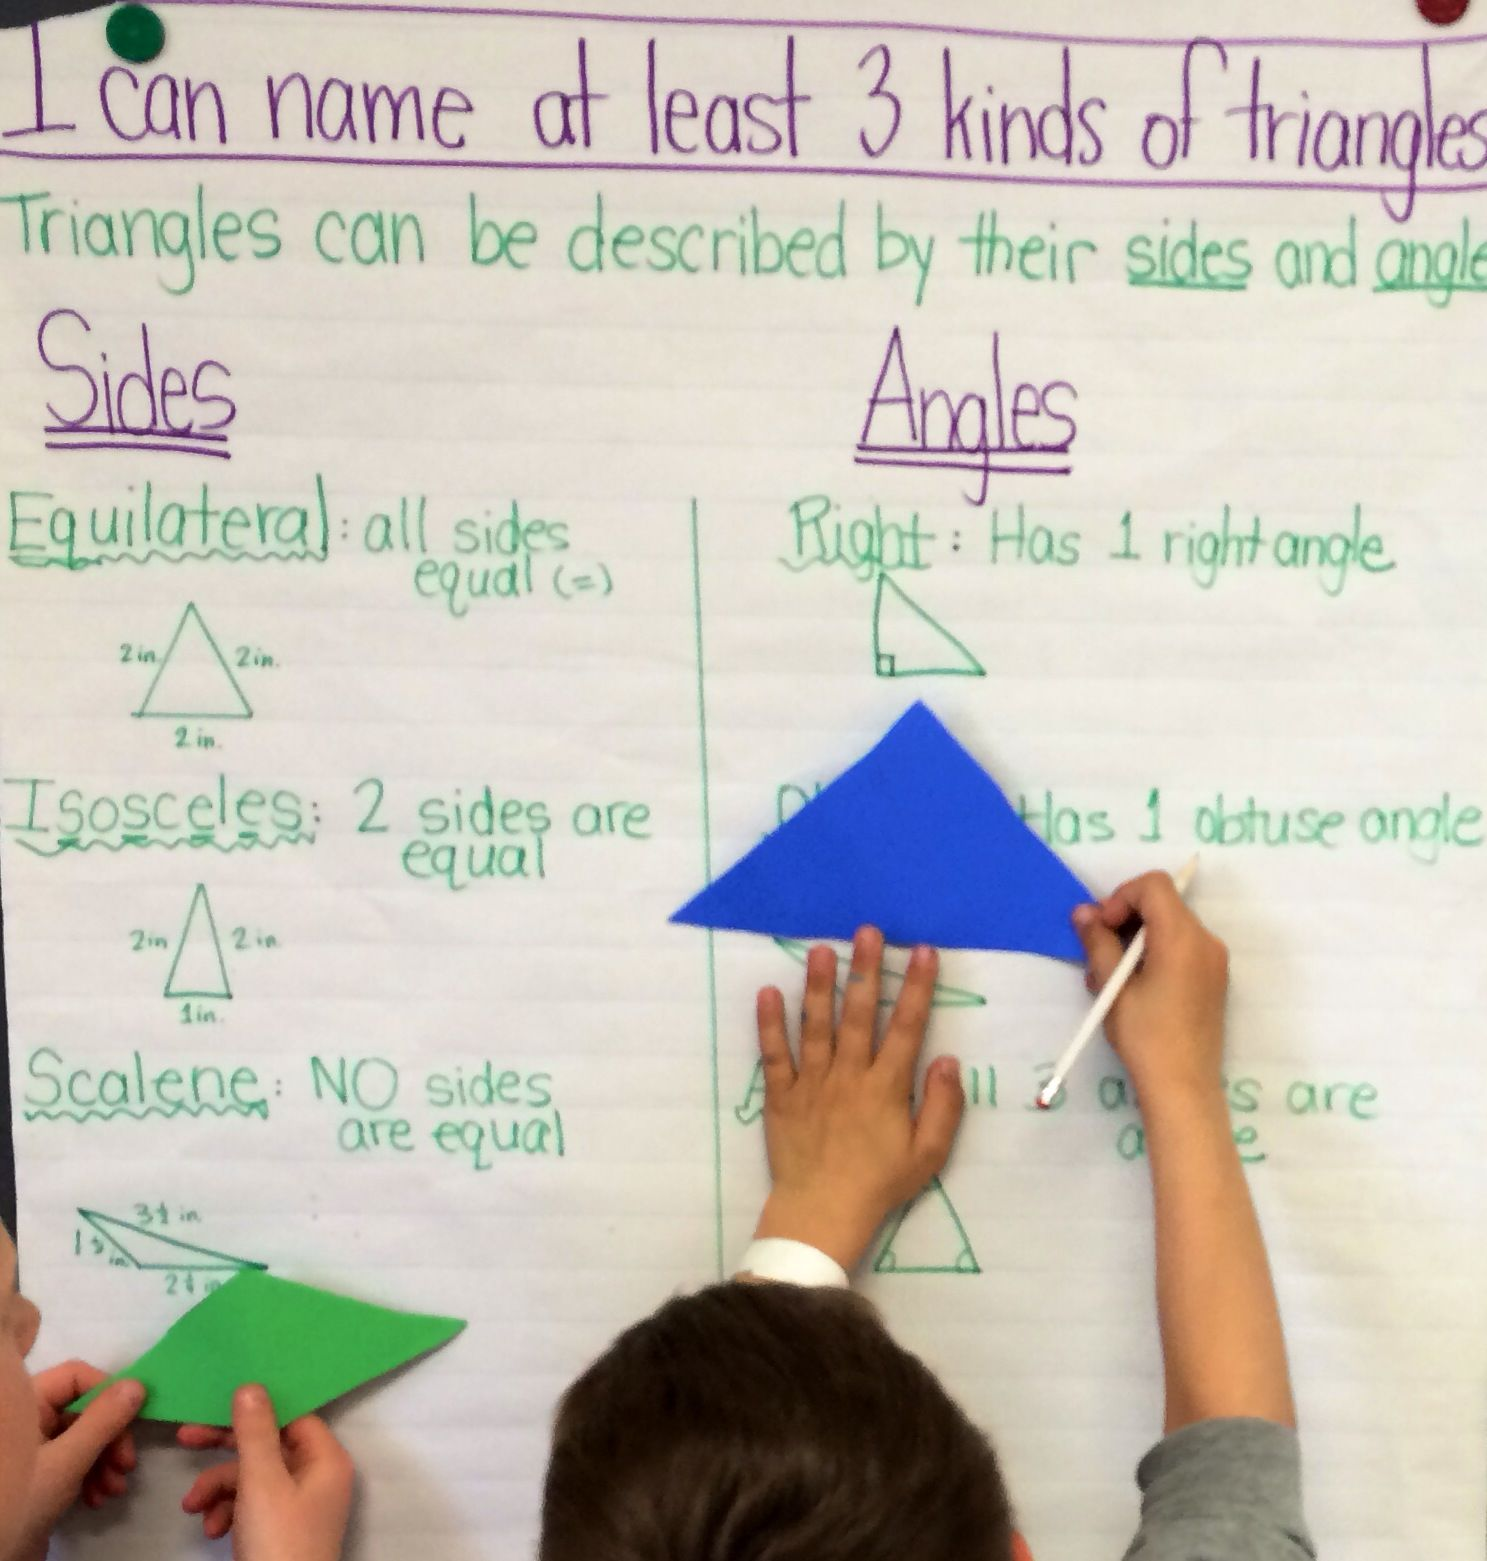 Classifying Shapes Using Tangrams   Classifying triangles [ 1561 x 1487 Pixel ]